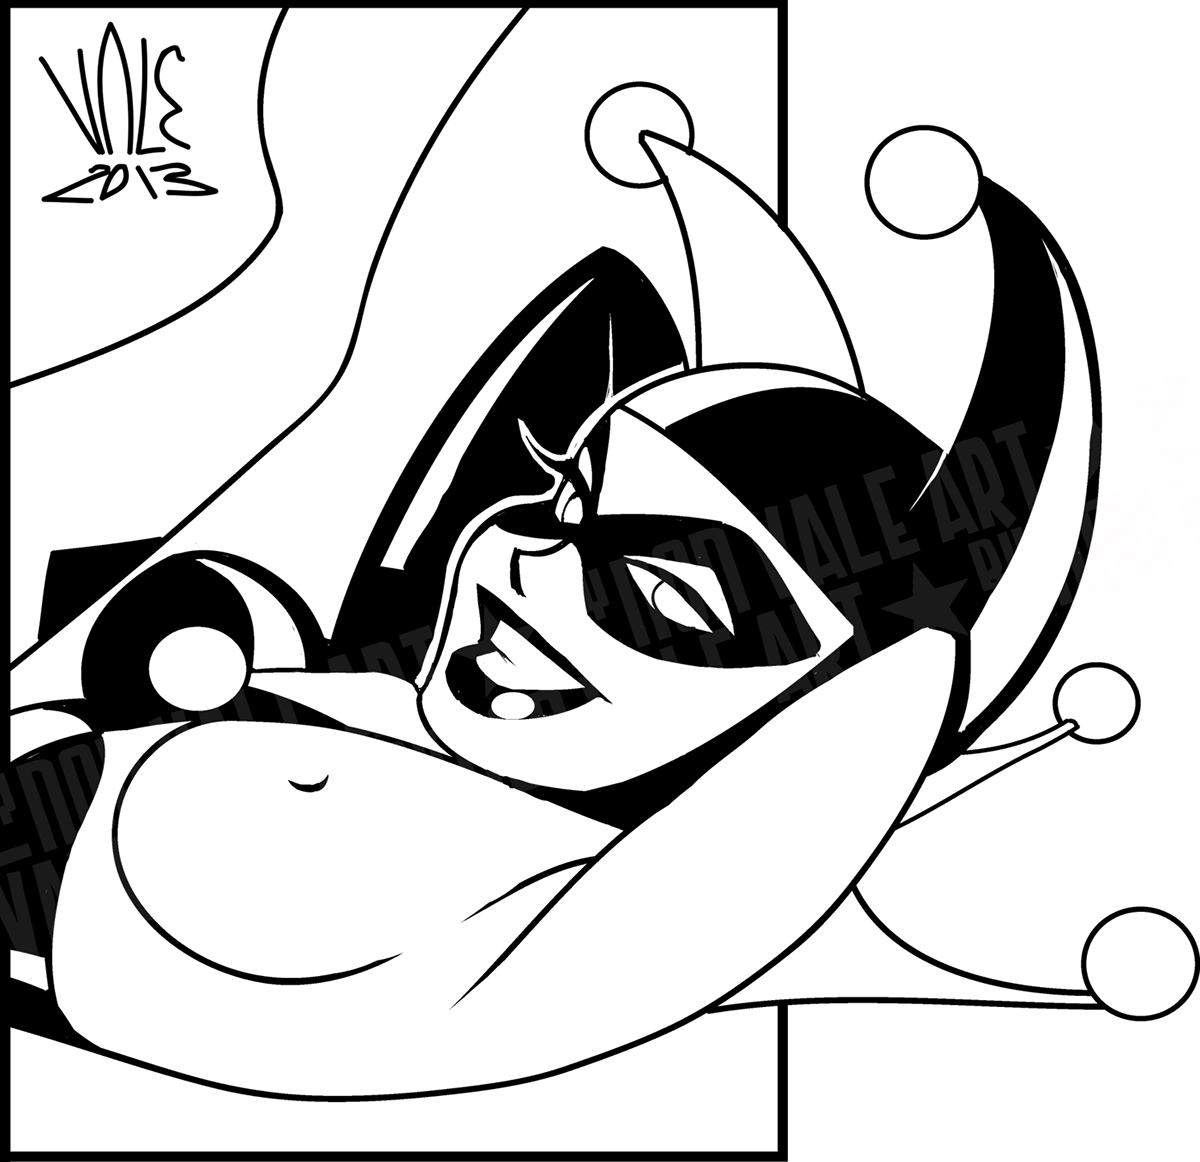 Harley quinn clipart black and white 2nd edition image library stock HARLEY QUINN in Bruce Timm\'s style on Behance image library stock